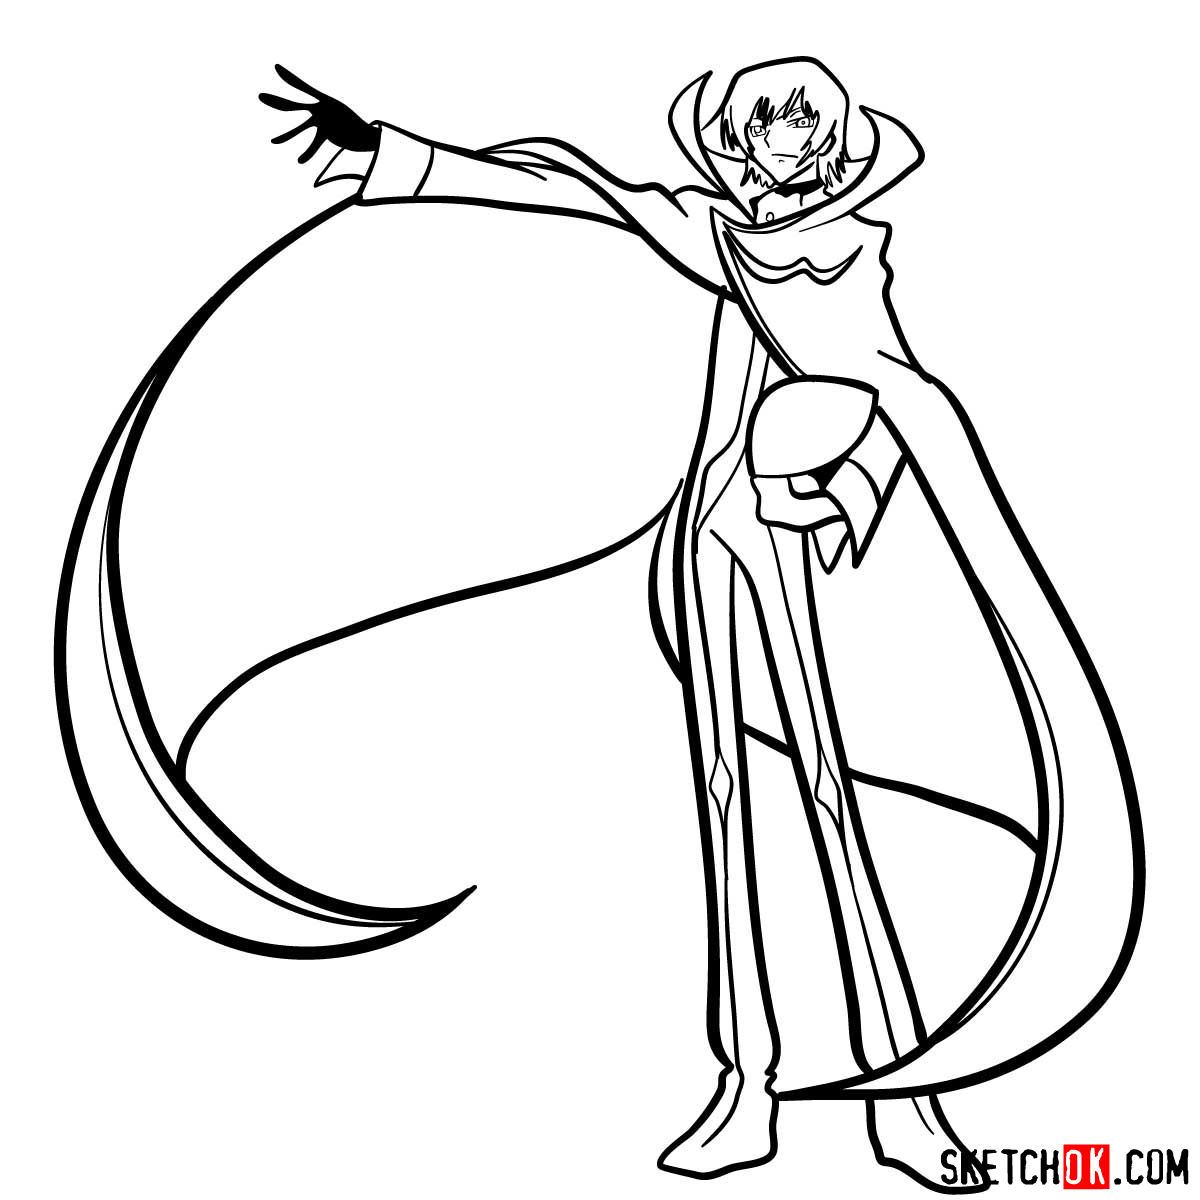 How to draw Lelouch Lamperouge | Code Geass anime - step 15